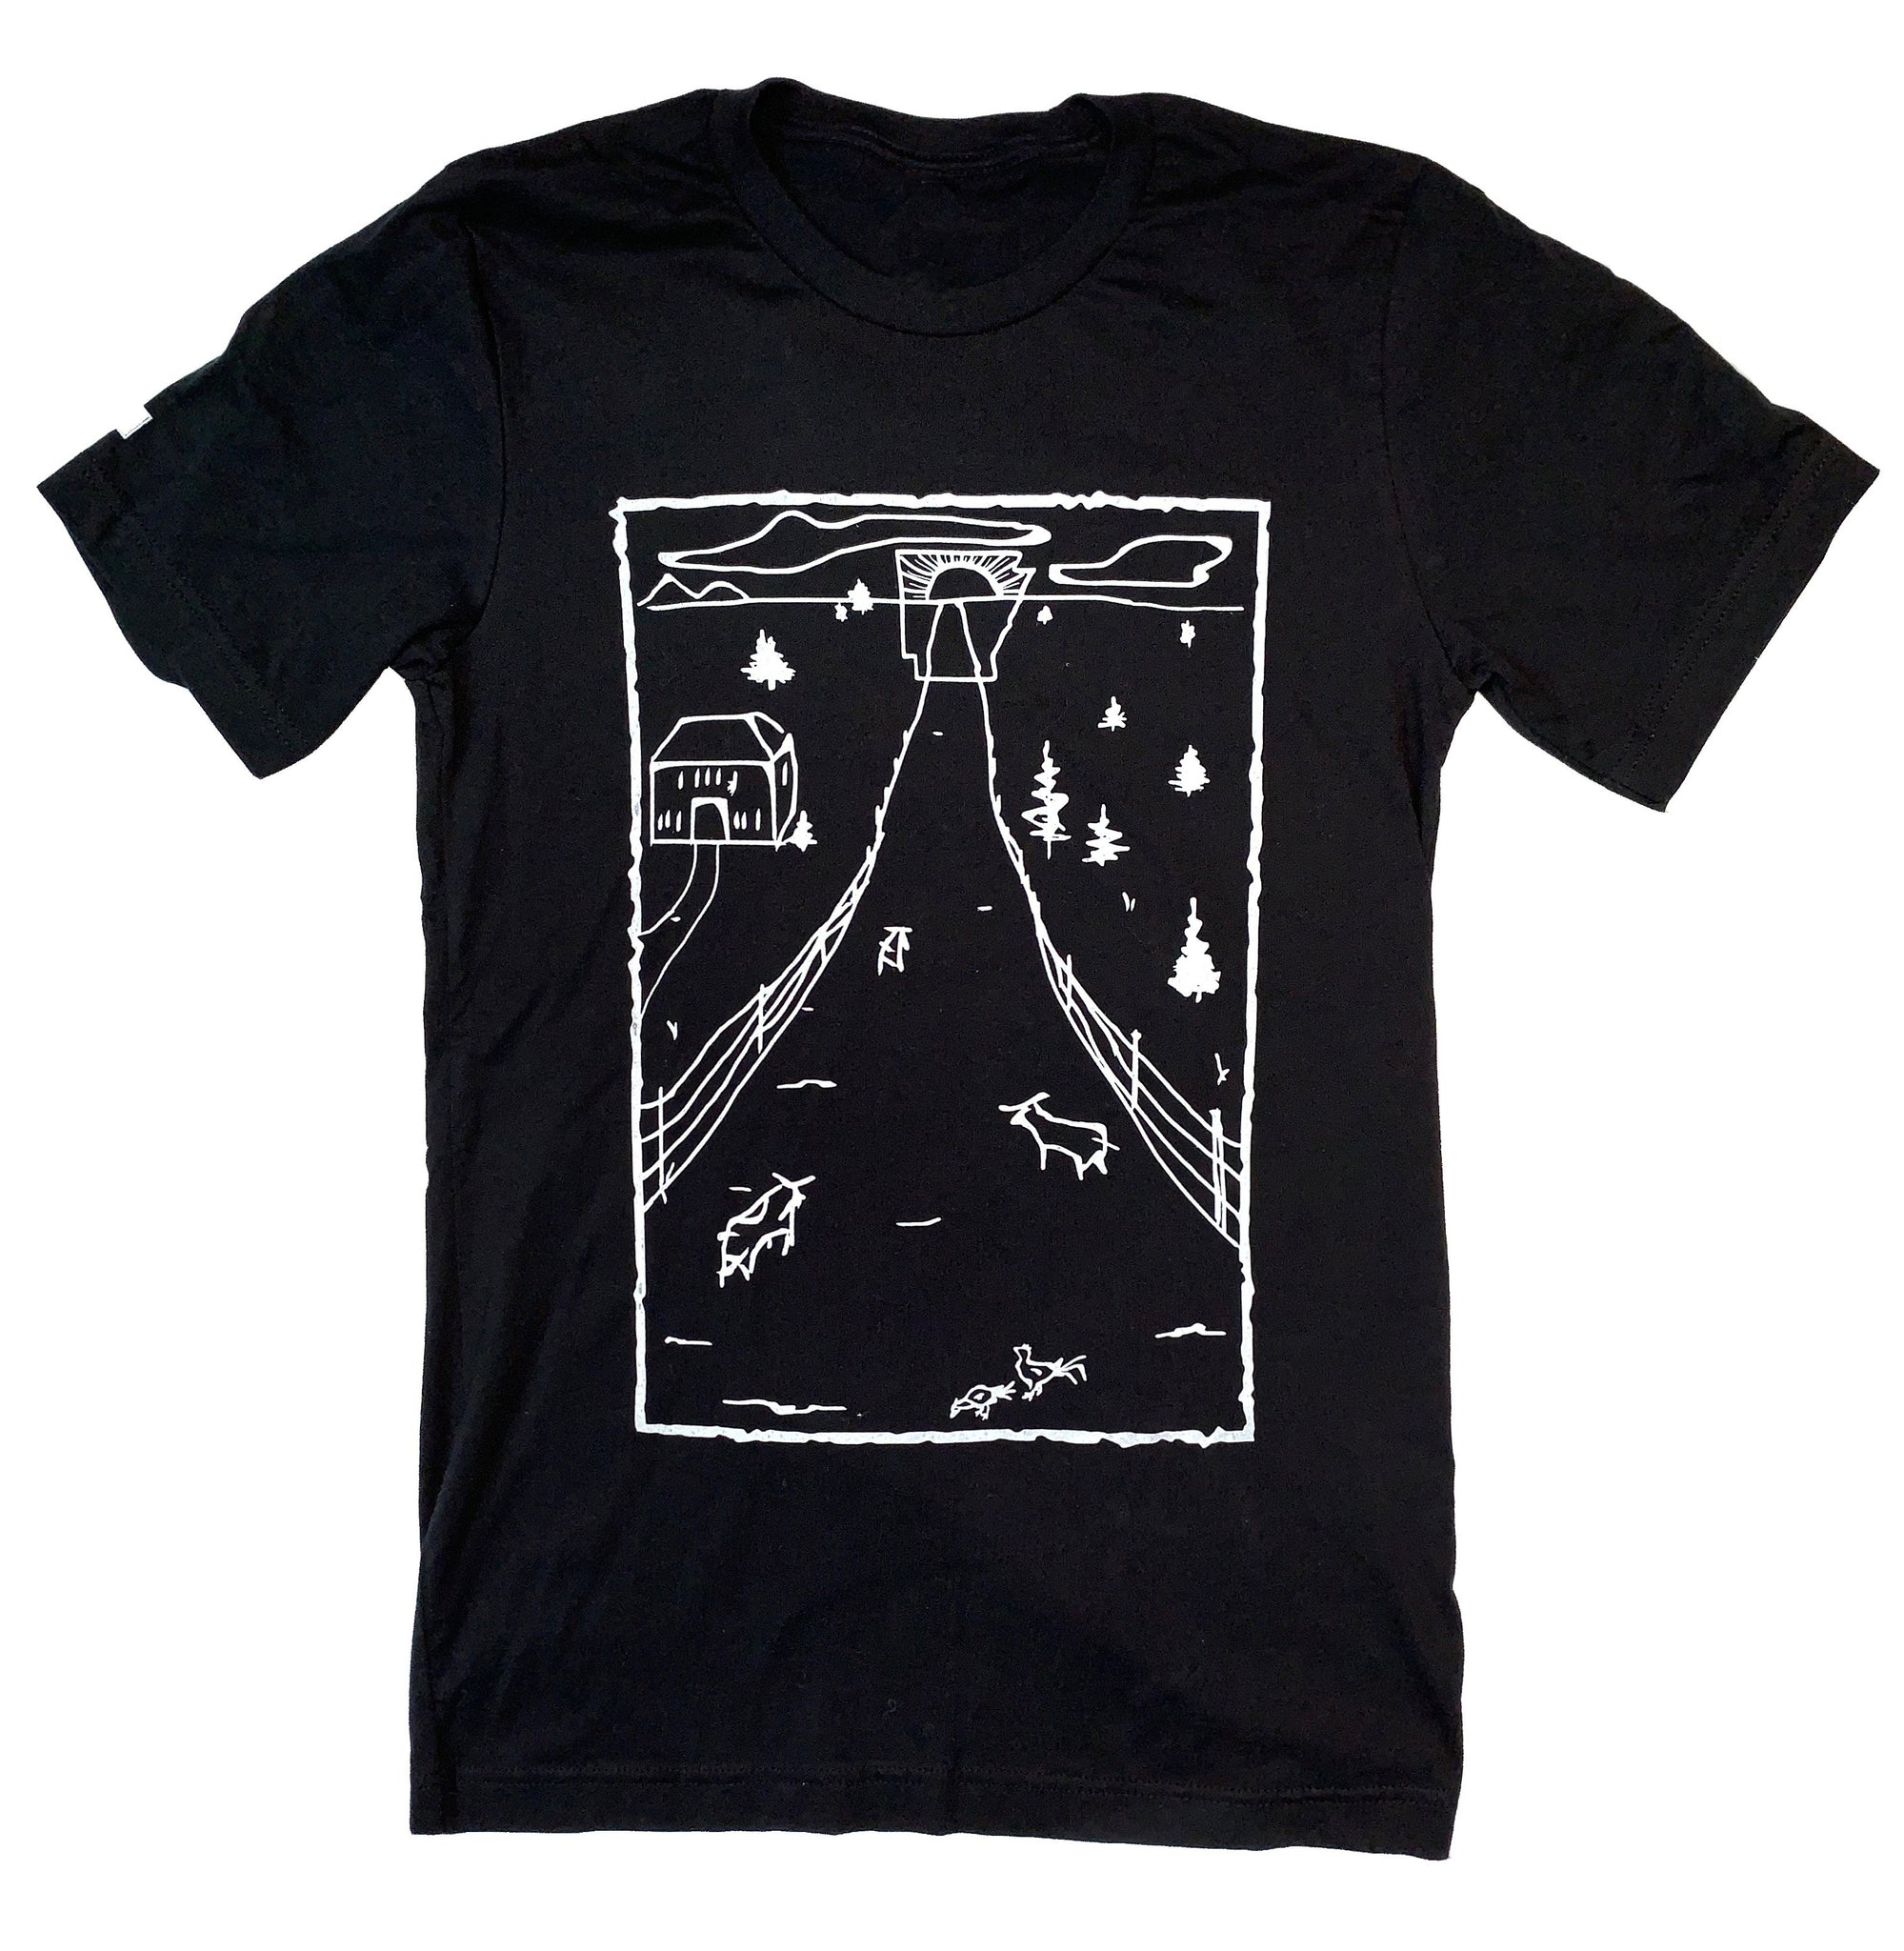 All Roads Lead to Arkansas T-Shirt